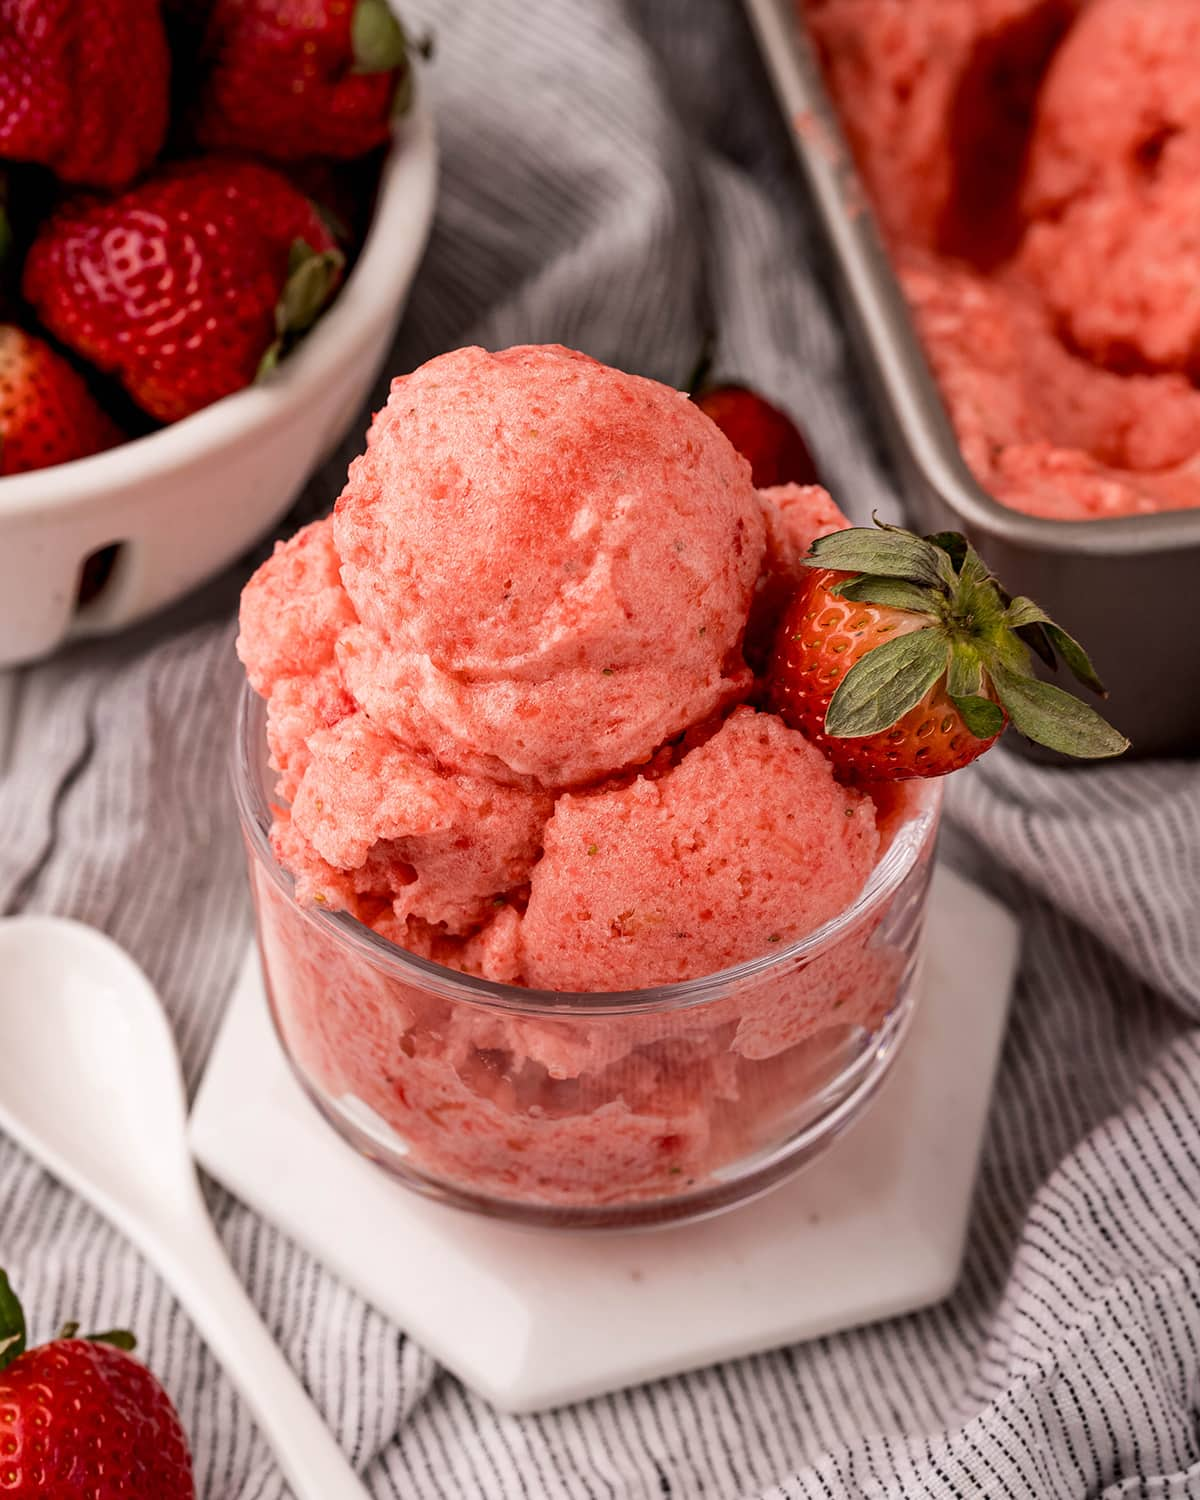 A clear glass bowl piled high with a pink strawberry sorbet, topped with a fresh strawberry.